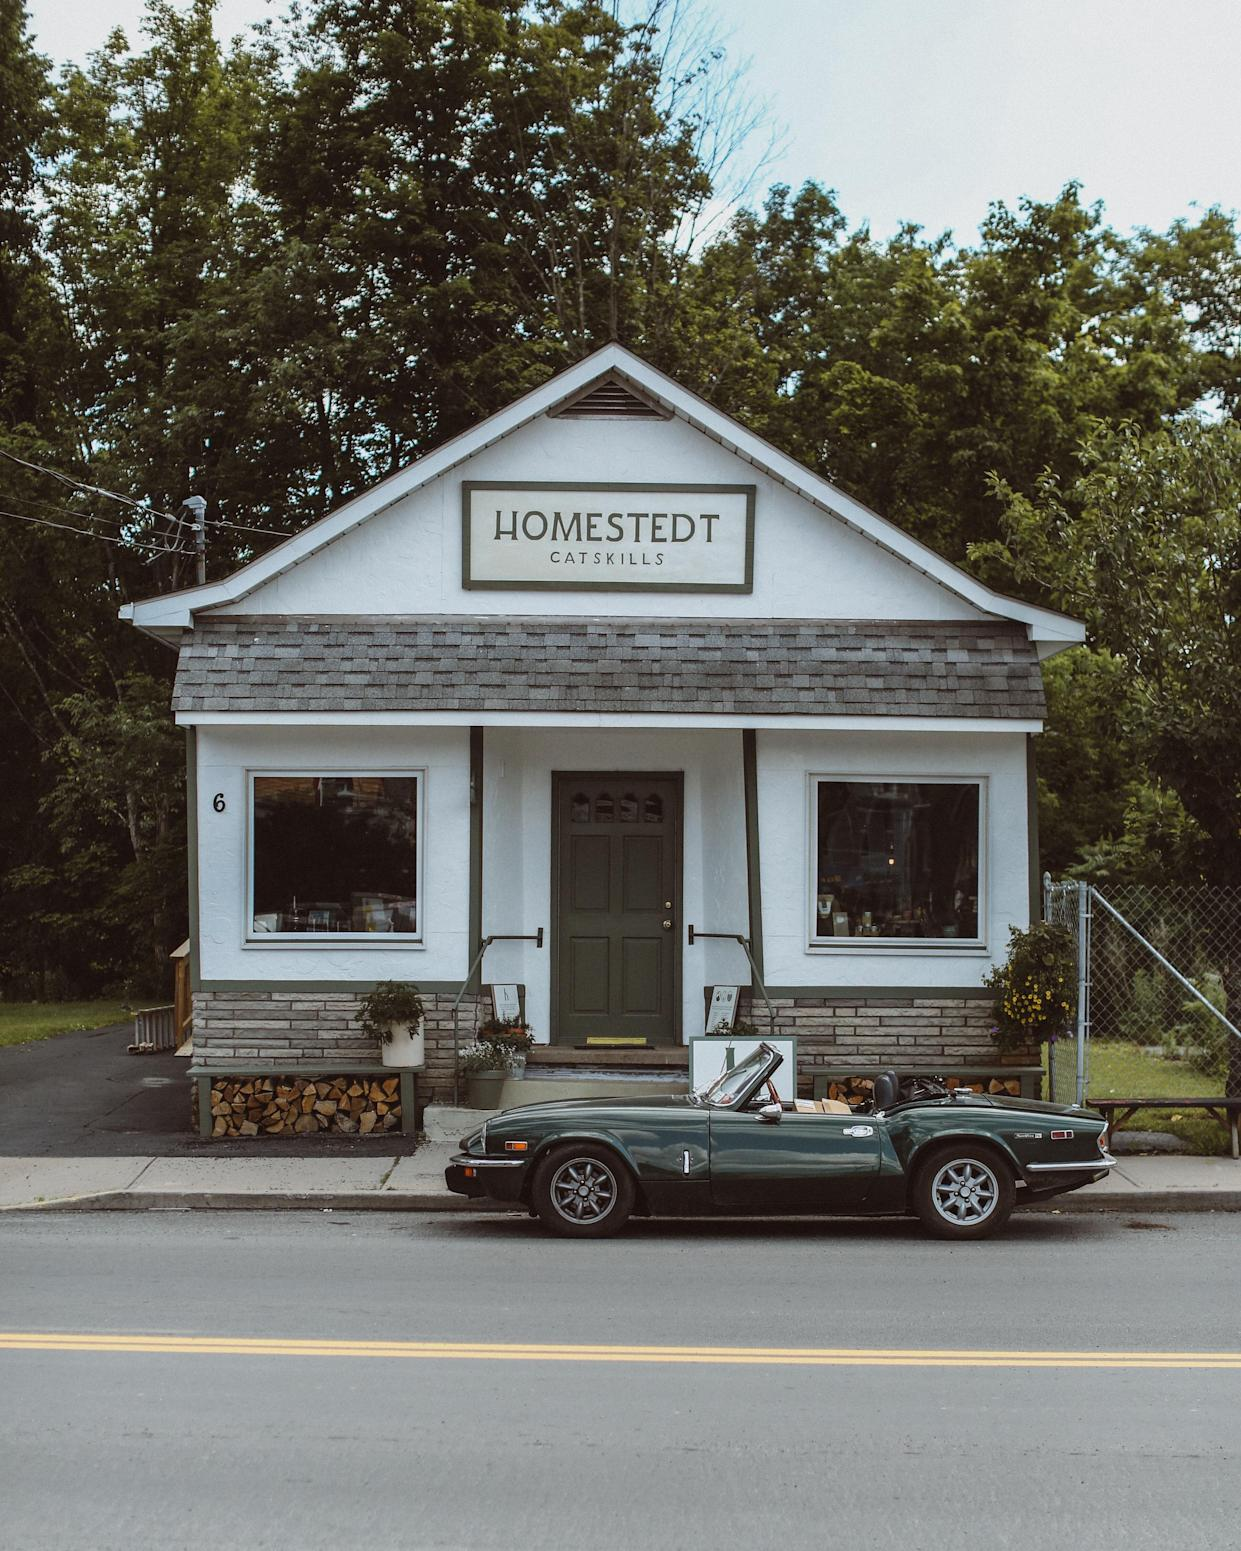 Homestedt Store & Showroom in Livingston Manor, New York.